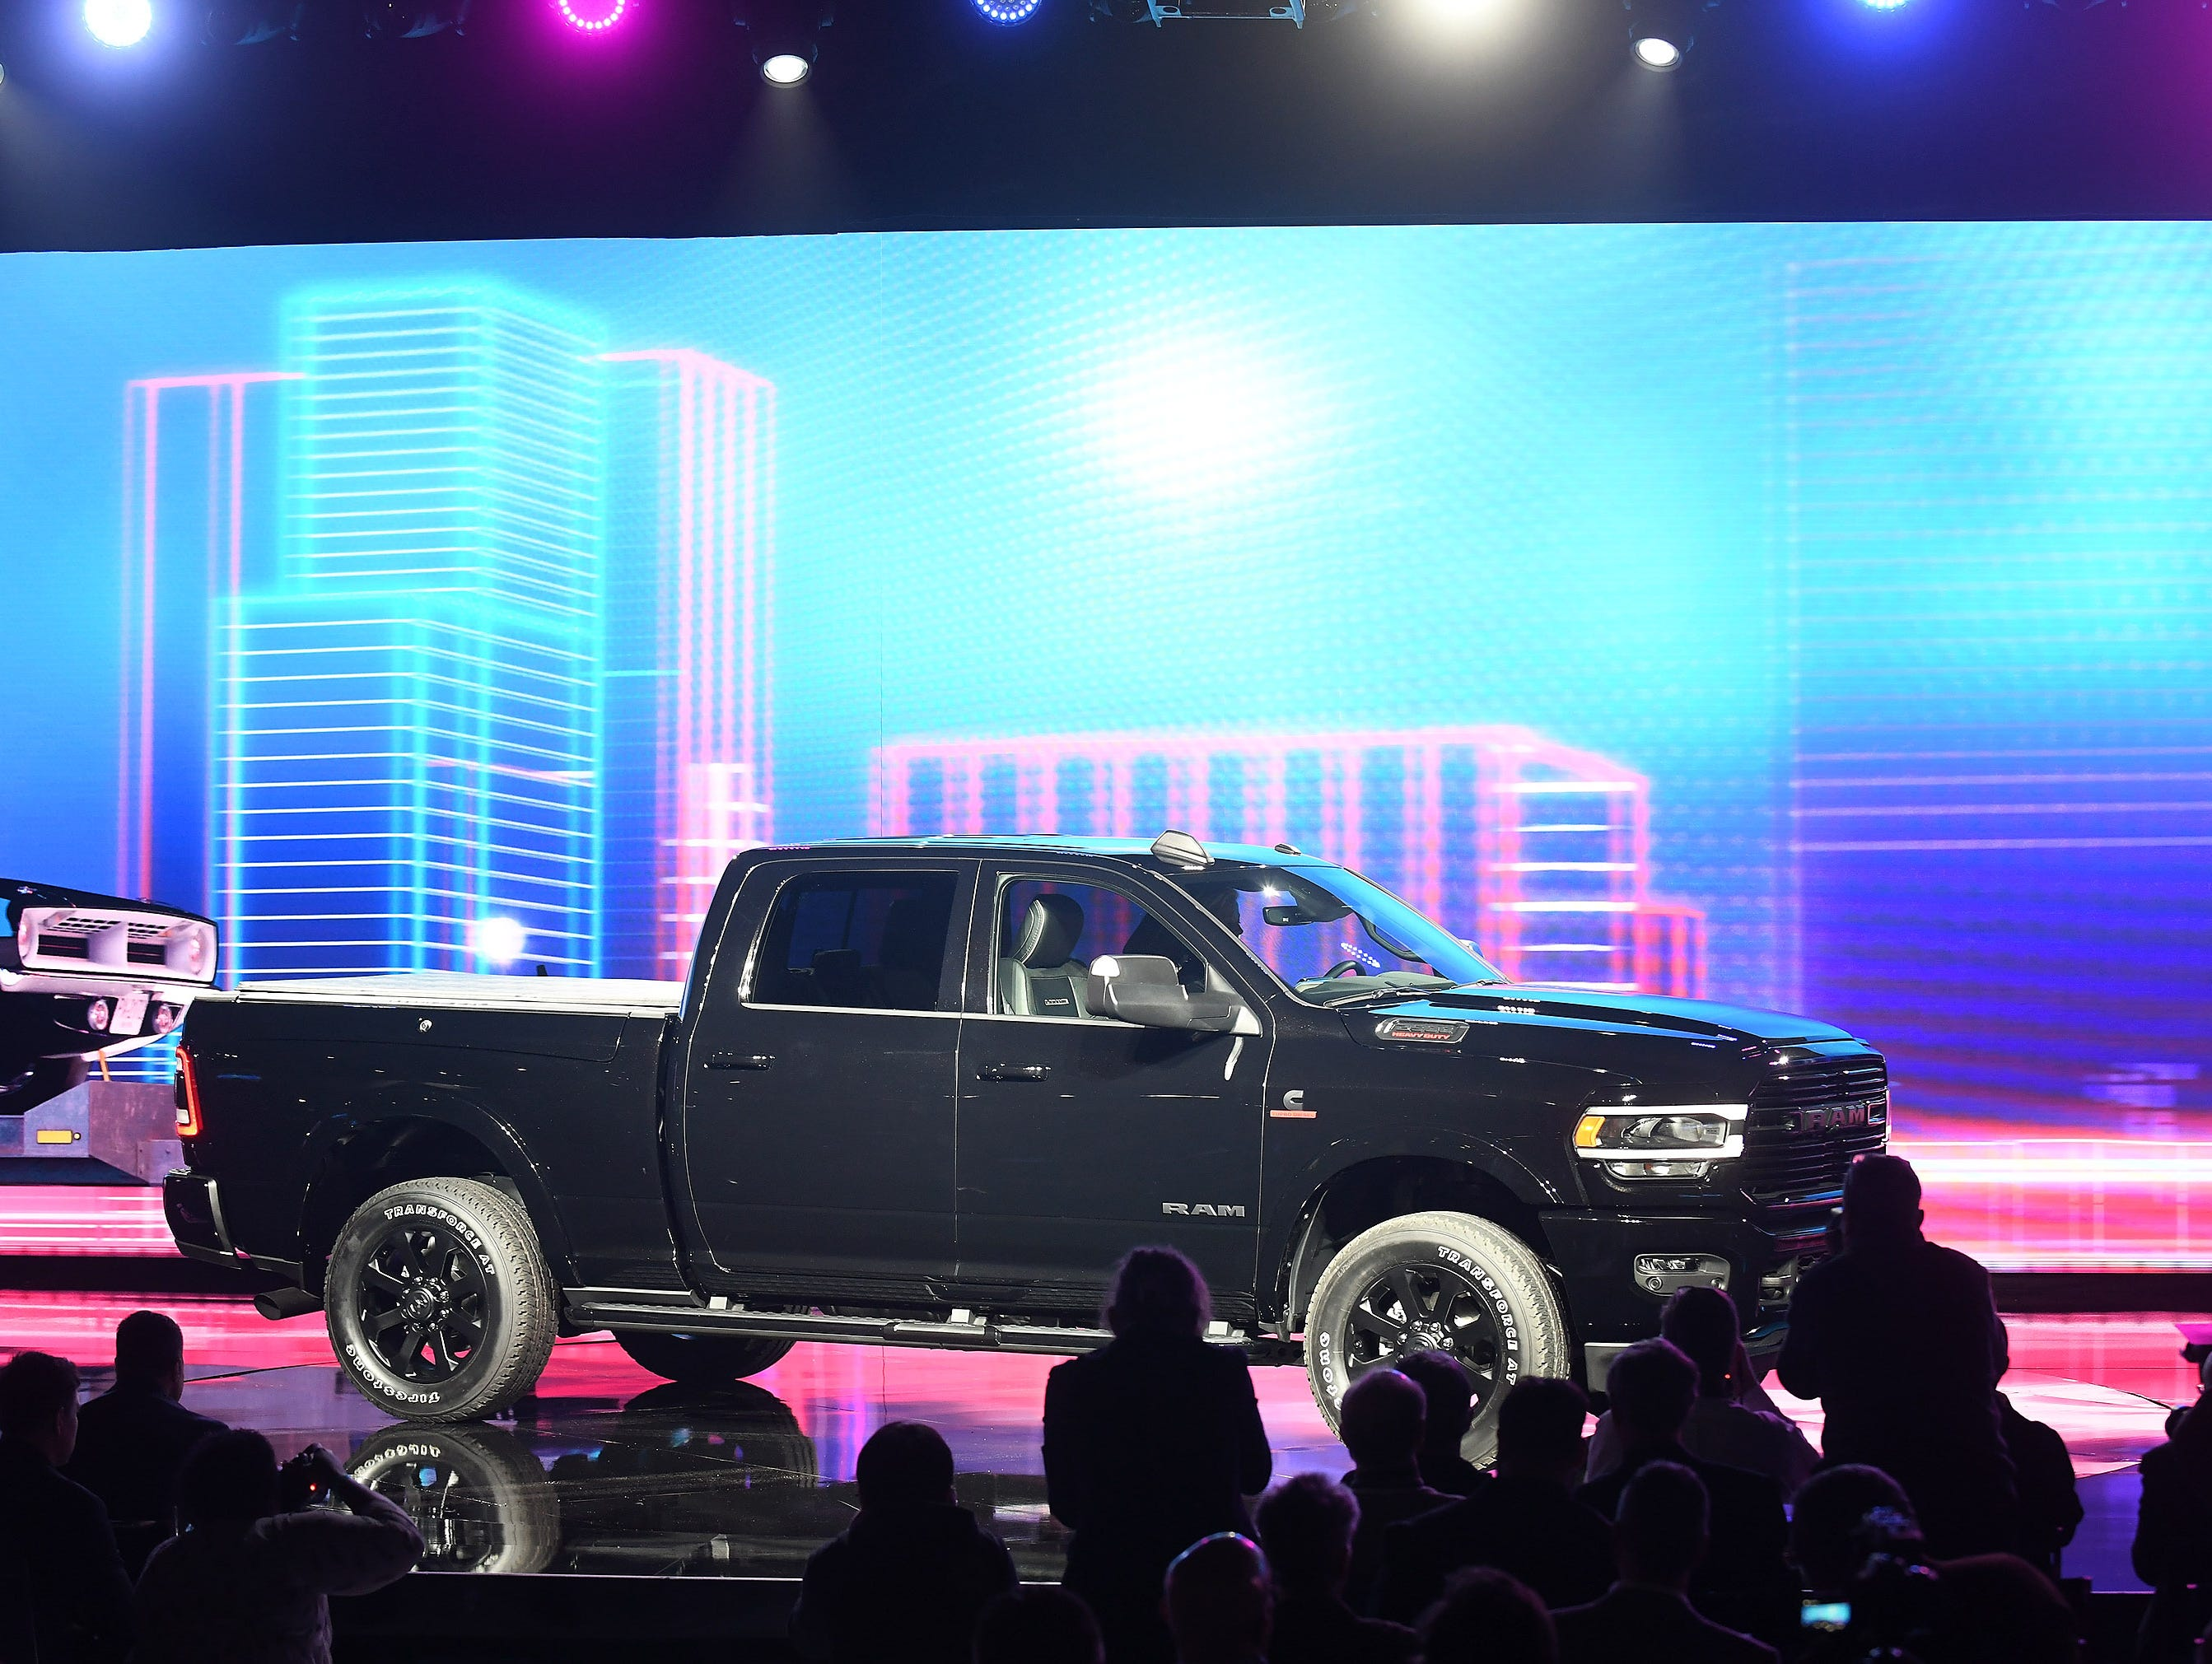 The 2019 Ram Heavy Duty 2500 drives on stage.